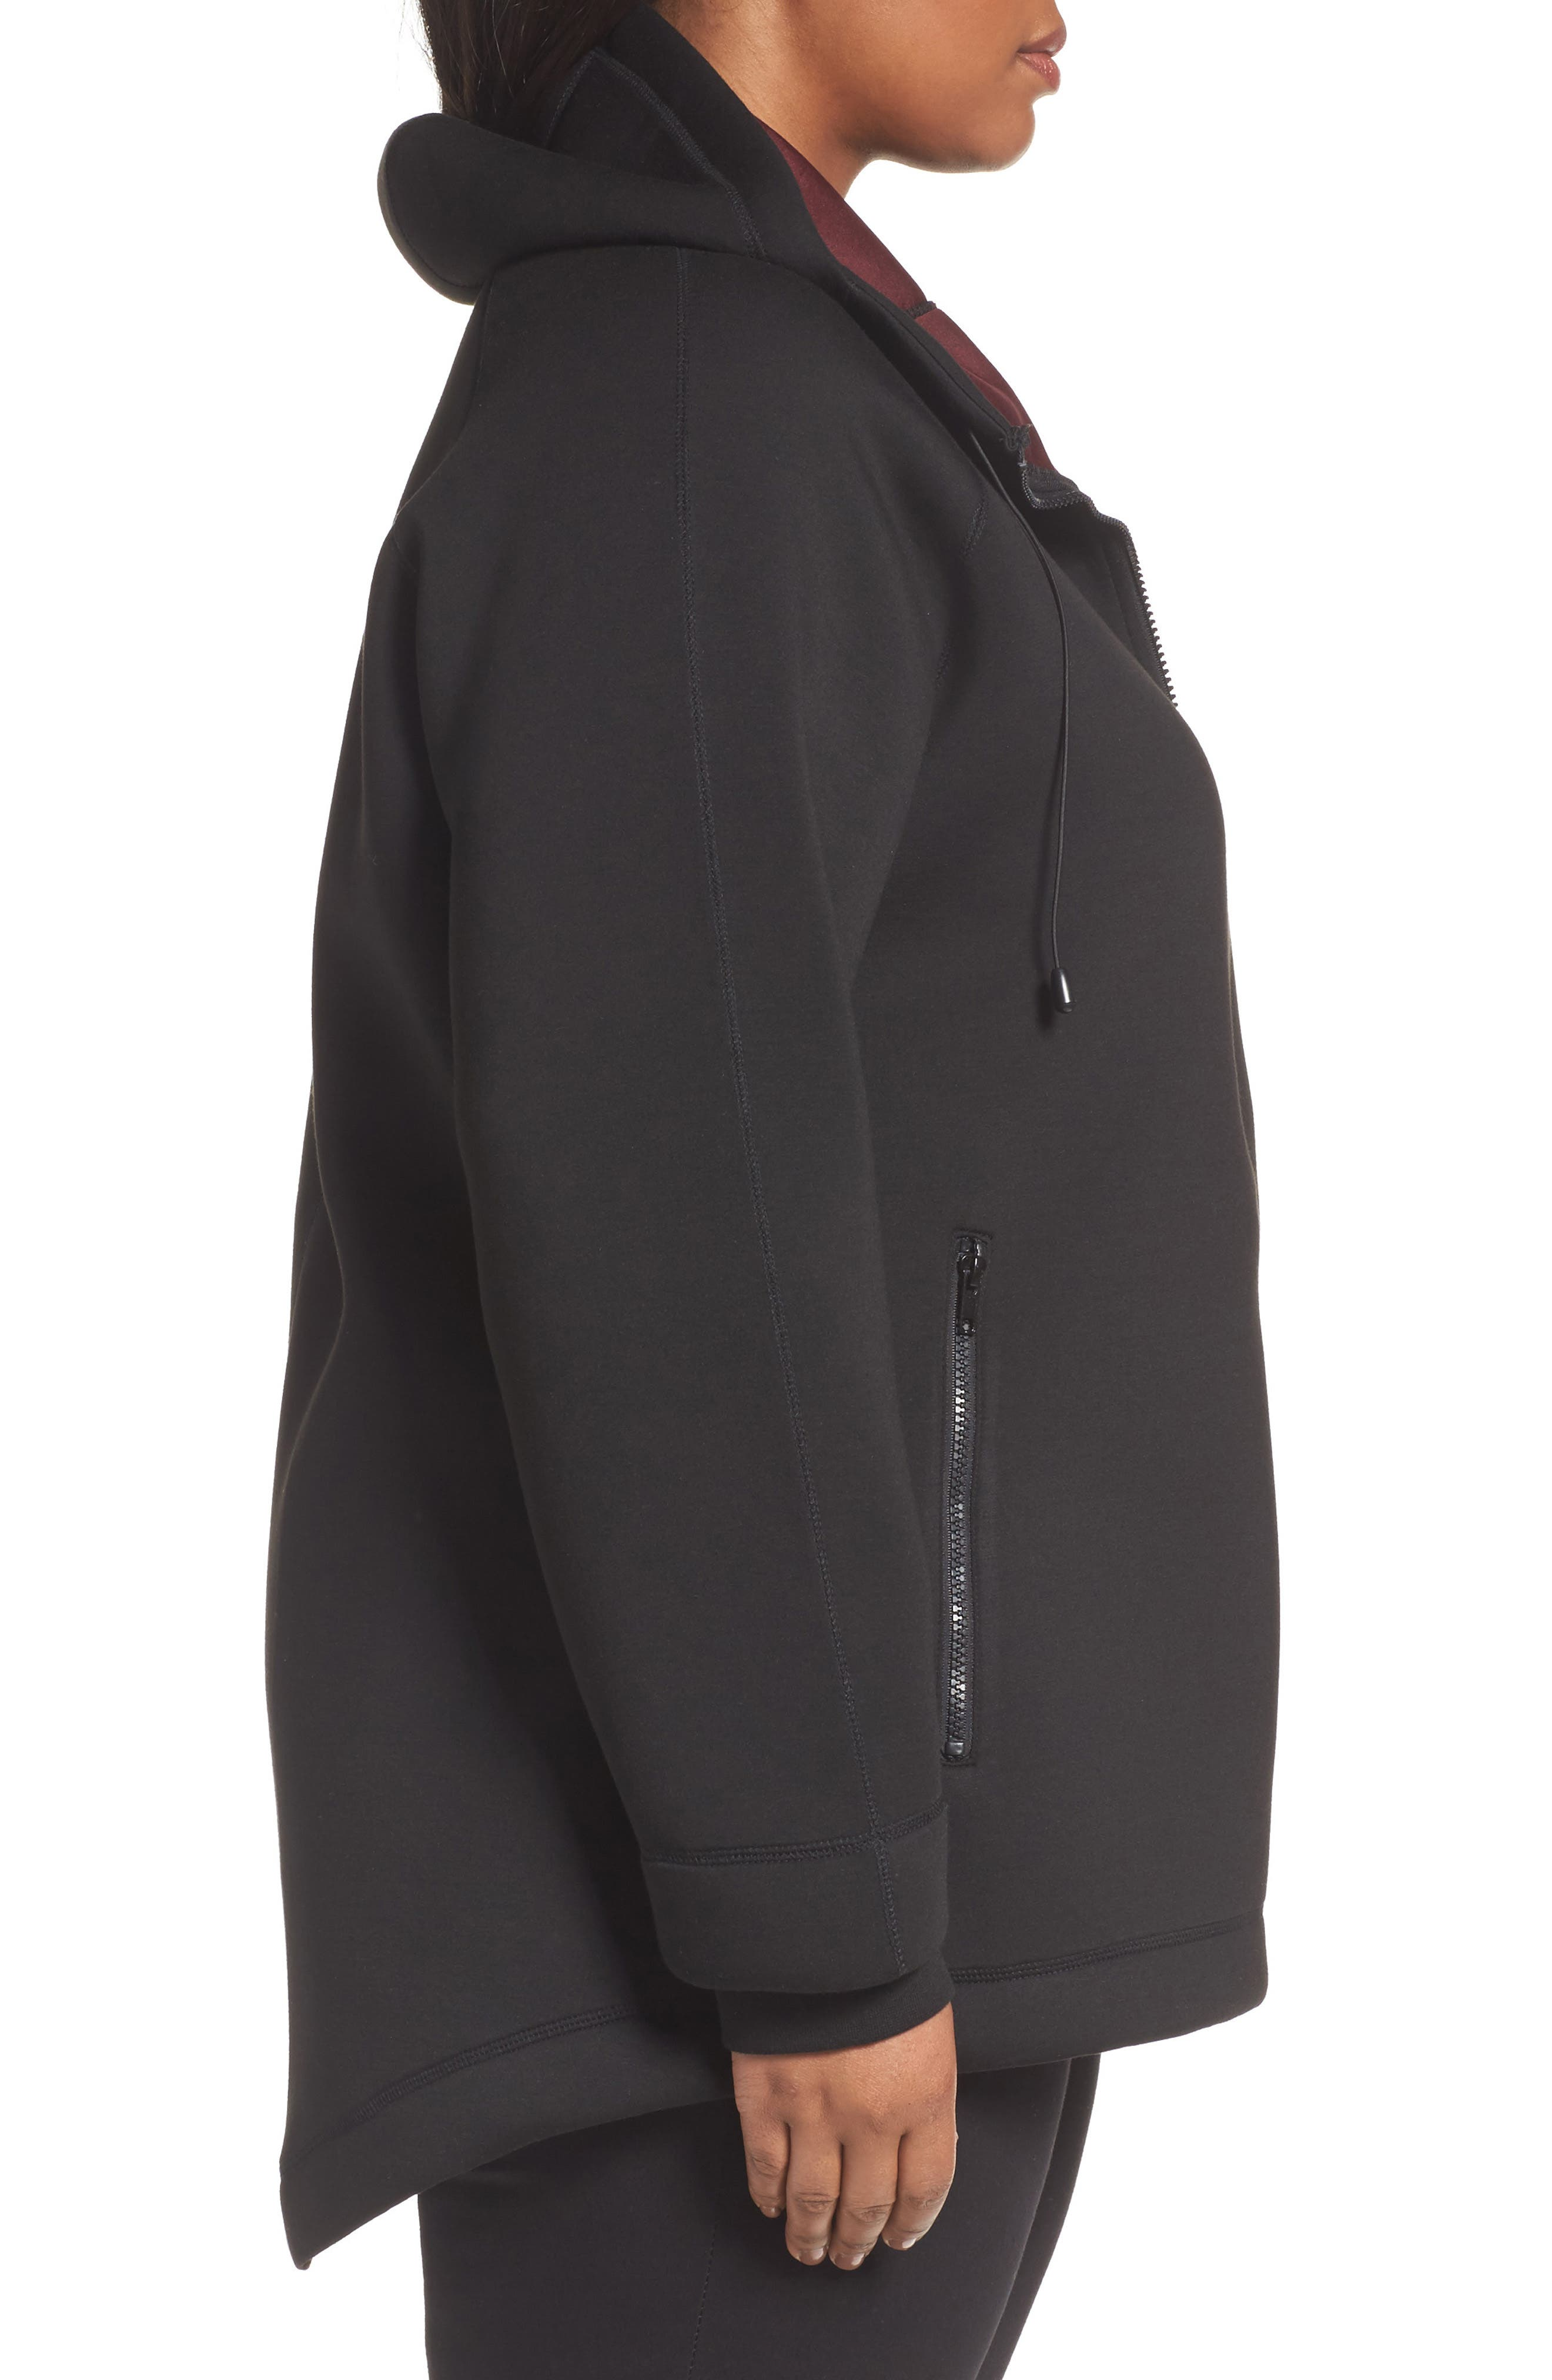 Mono Knit Drawstring Hooded Jacket,                             Alternate thumbnail 3, color,                             Black/ Burgundy